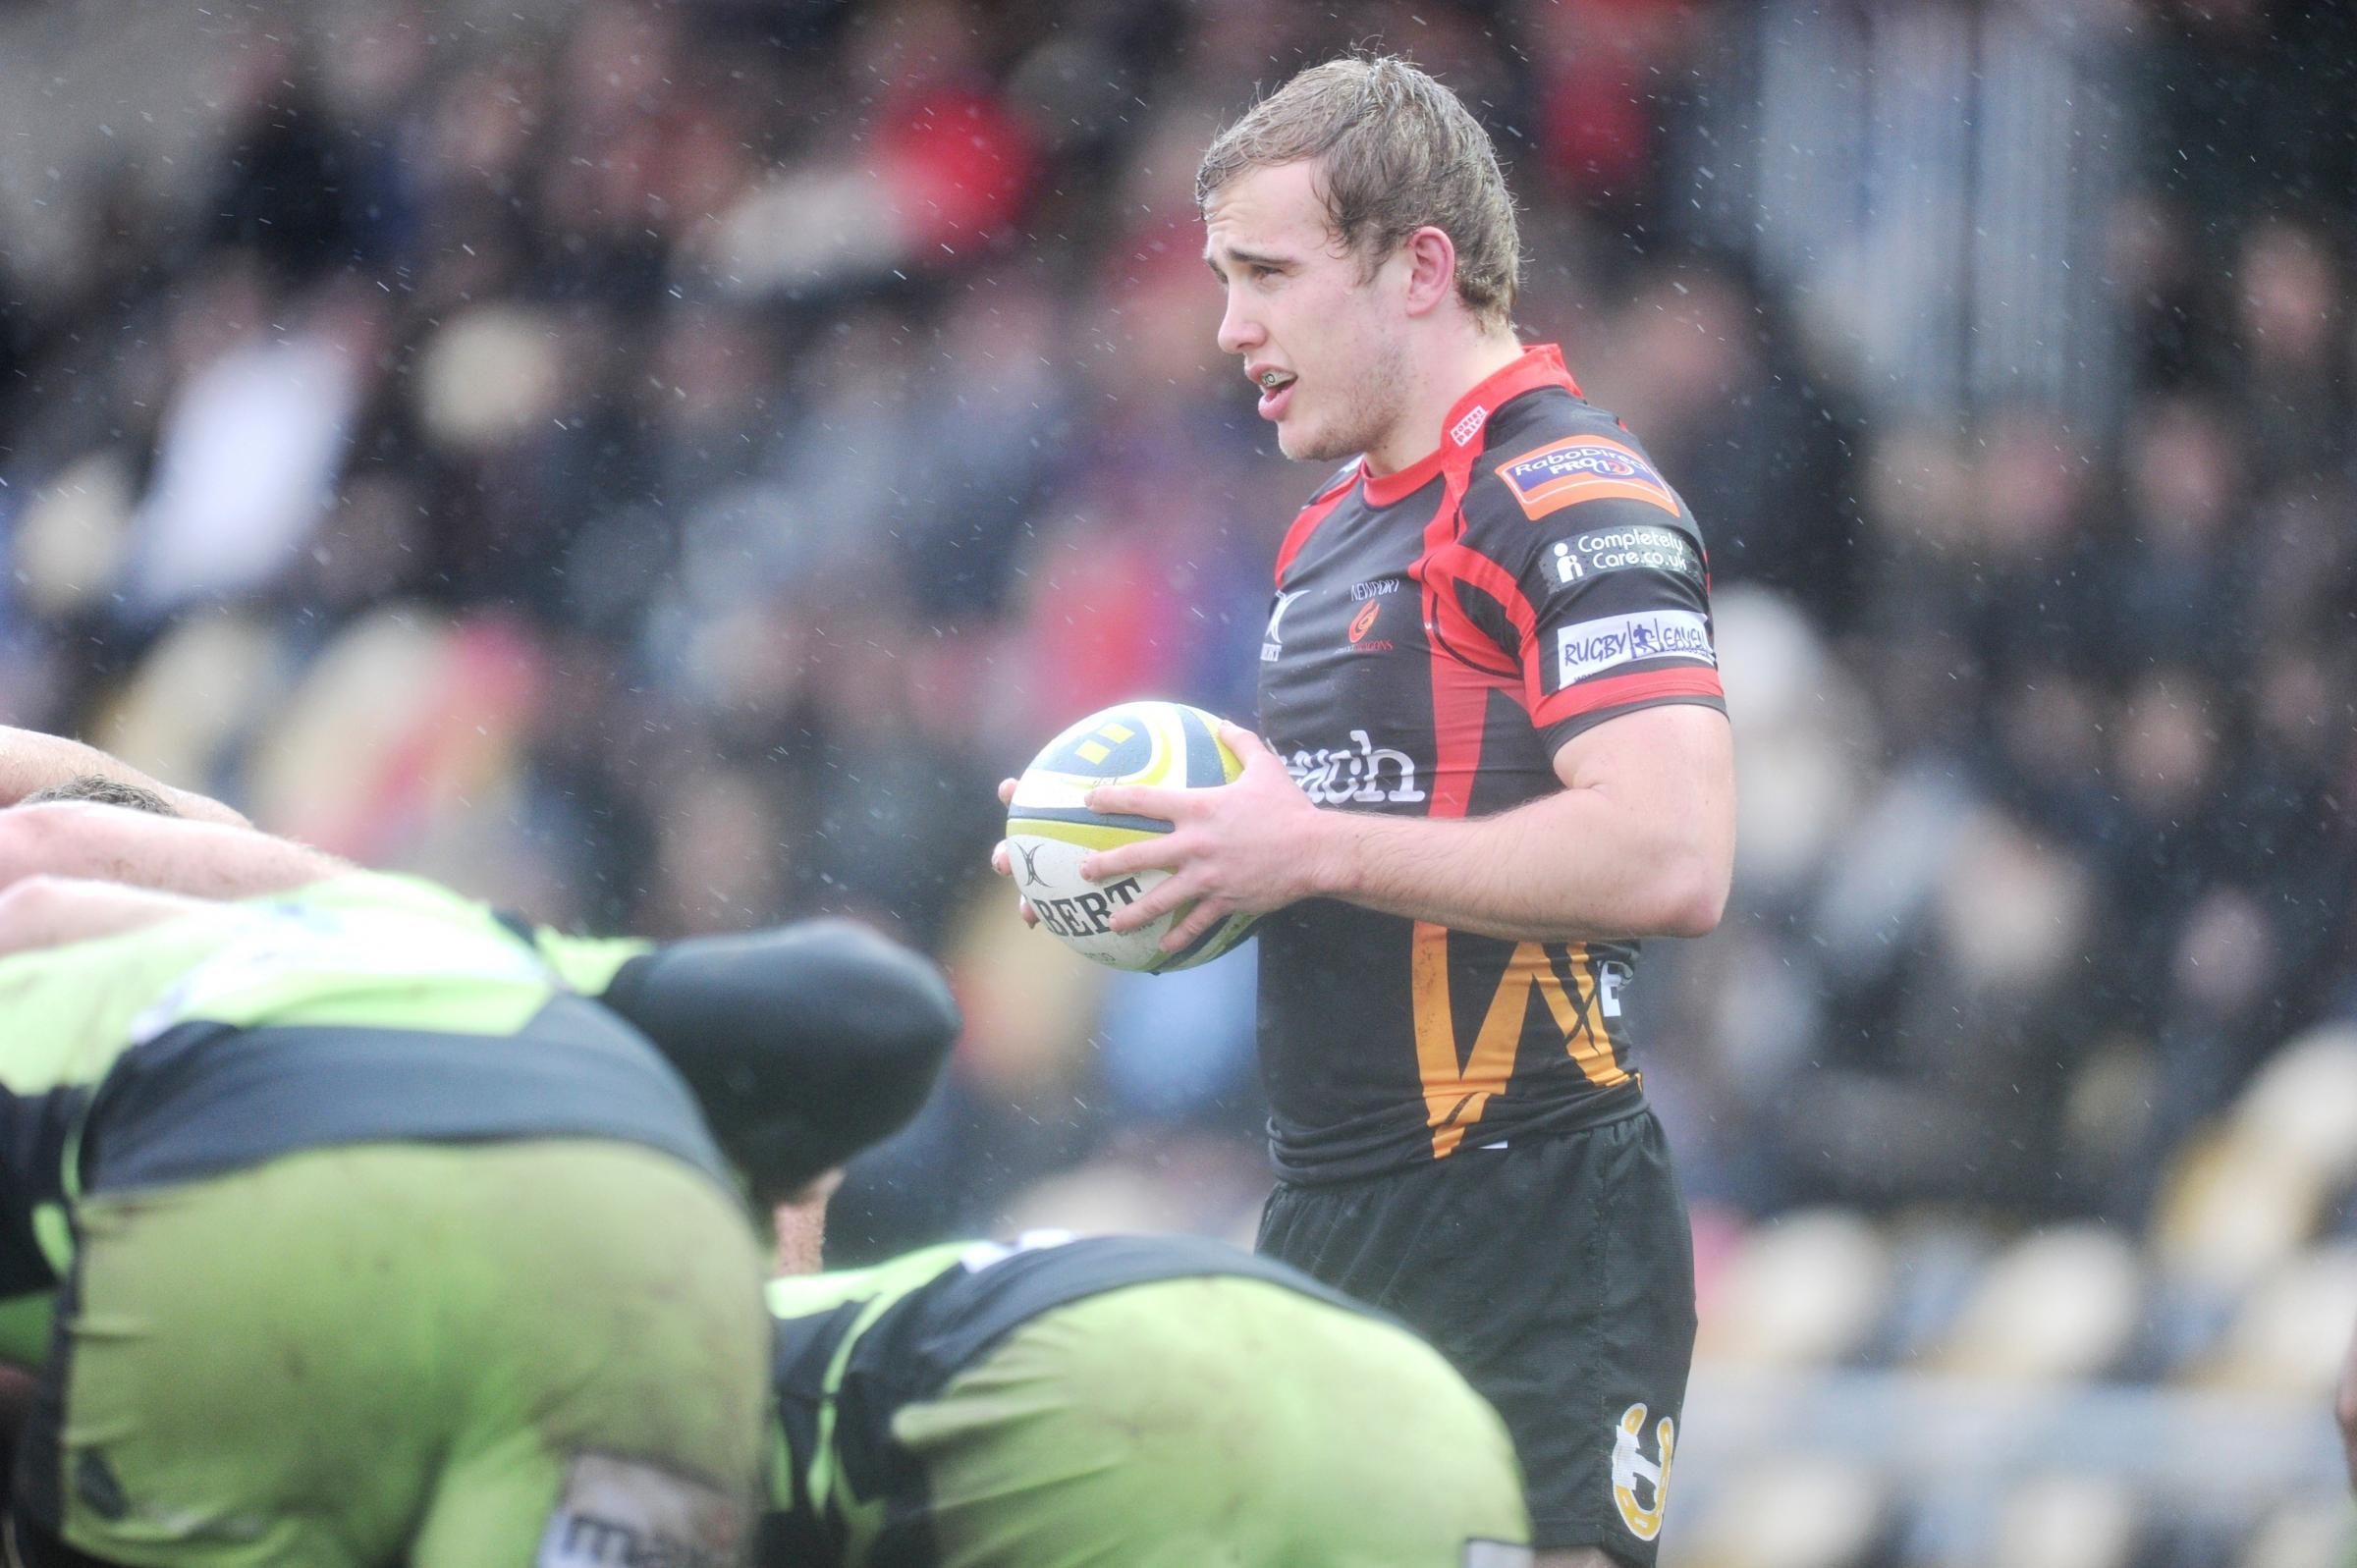 Newport Gwent Dragons v Northampton Saints in LV Cup.  Heavy downpours and hail stones interrupted the first half of the game as Scrum Half Luc Jones prepares to feed the ball to the scrum. (3639416)